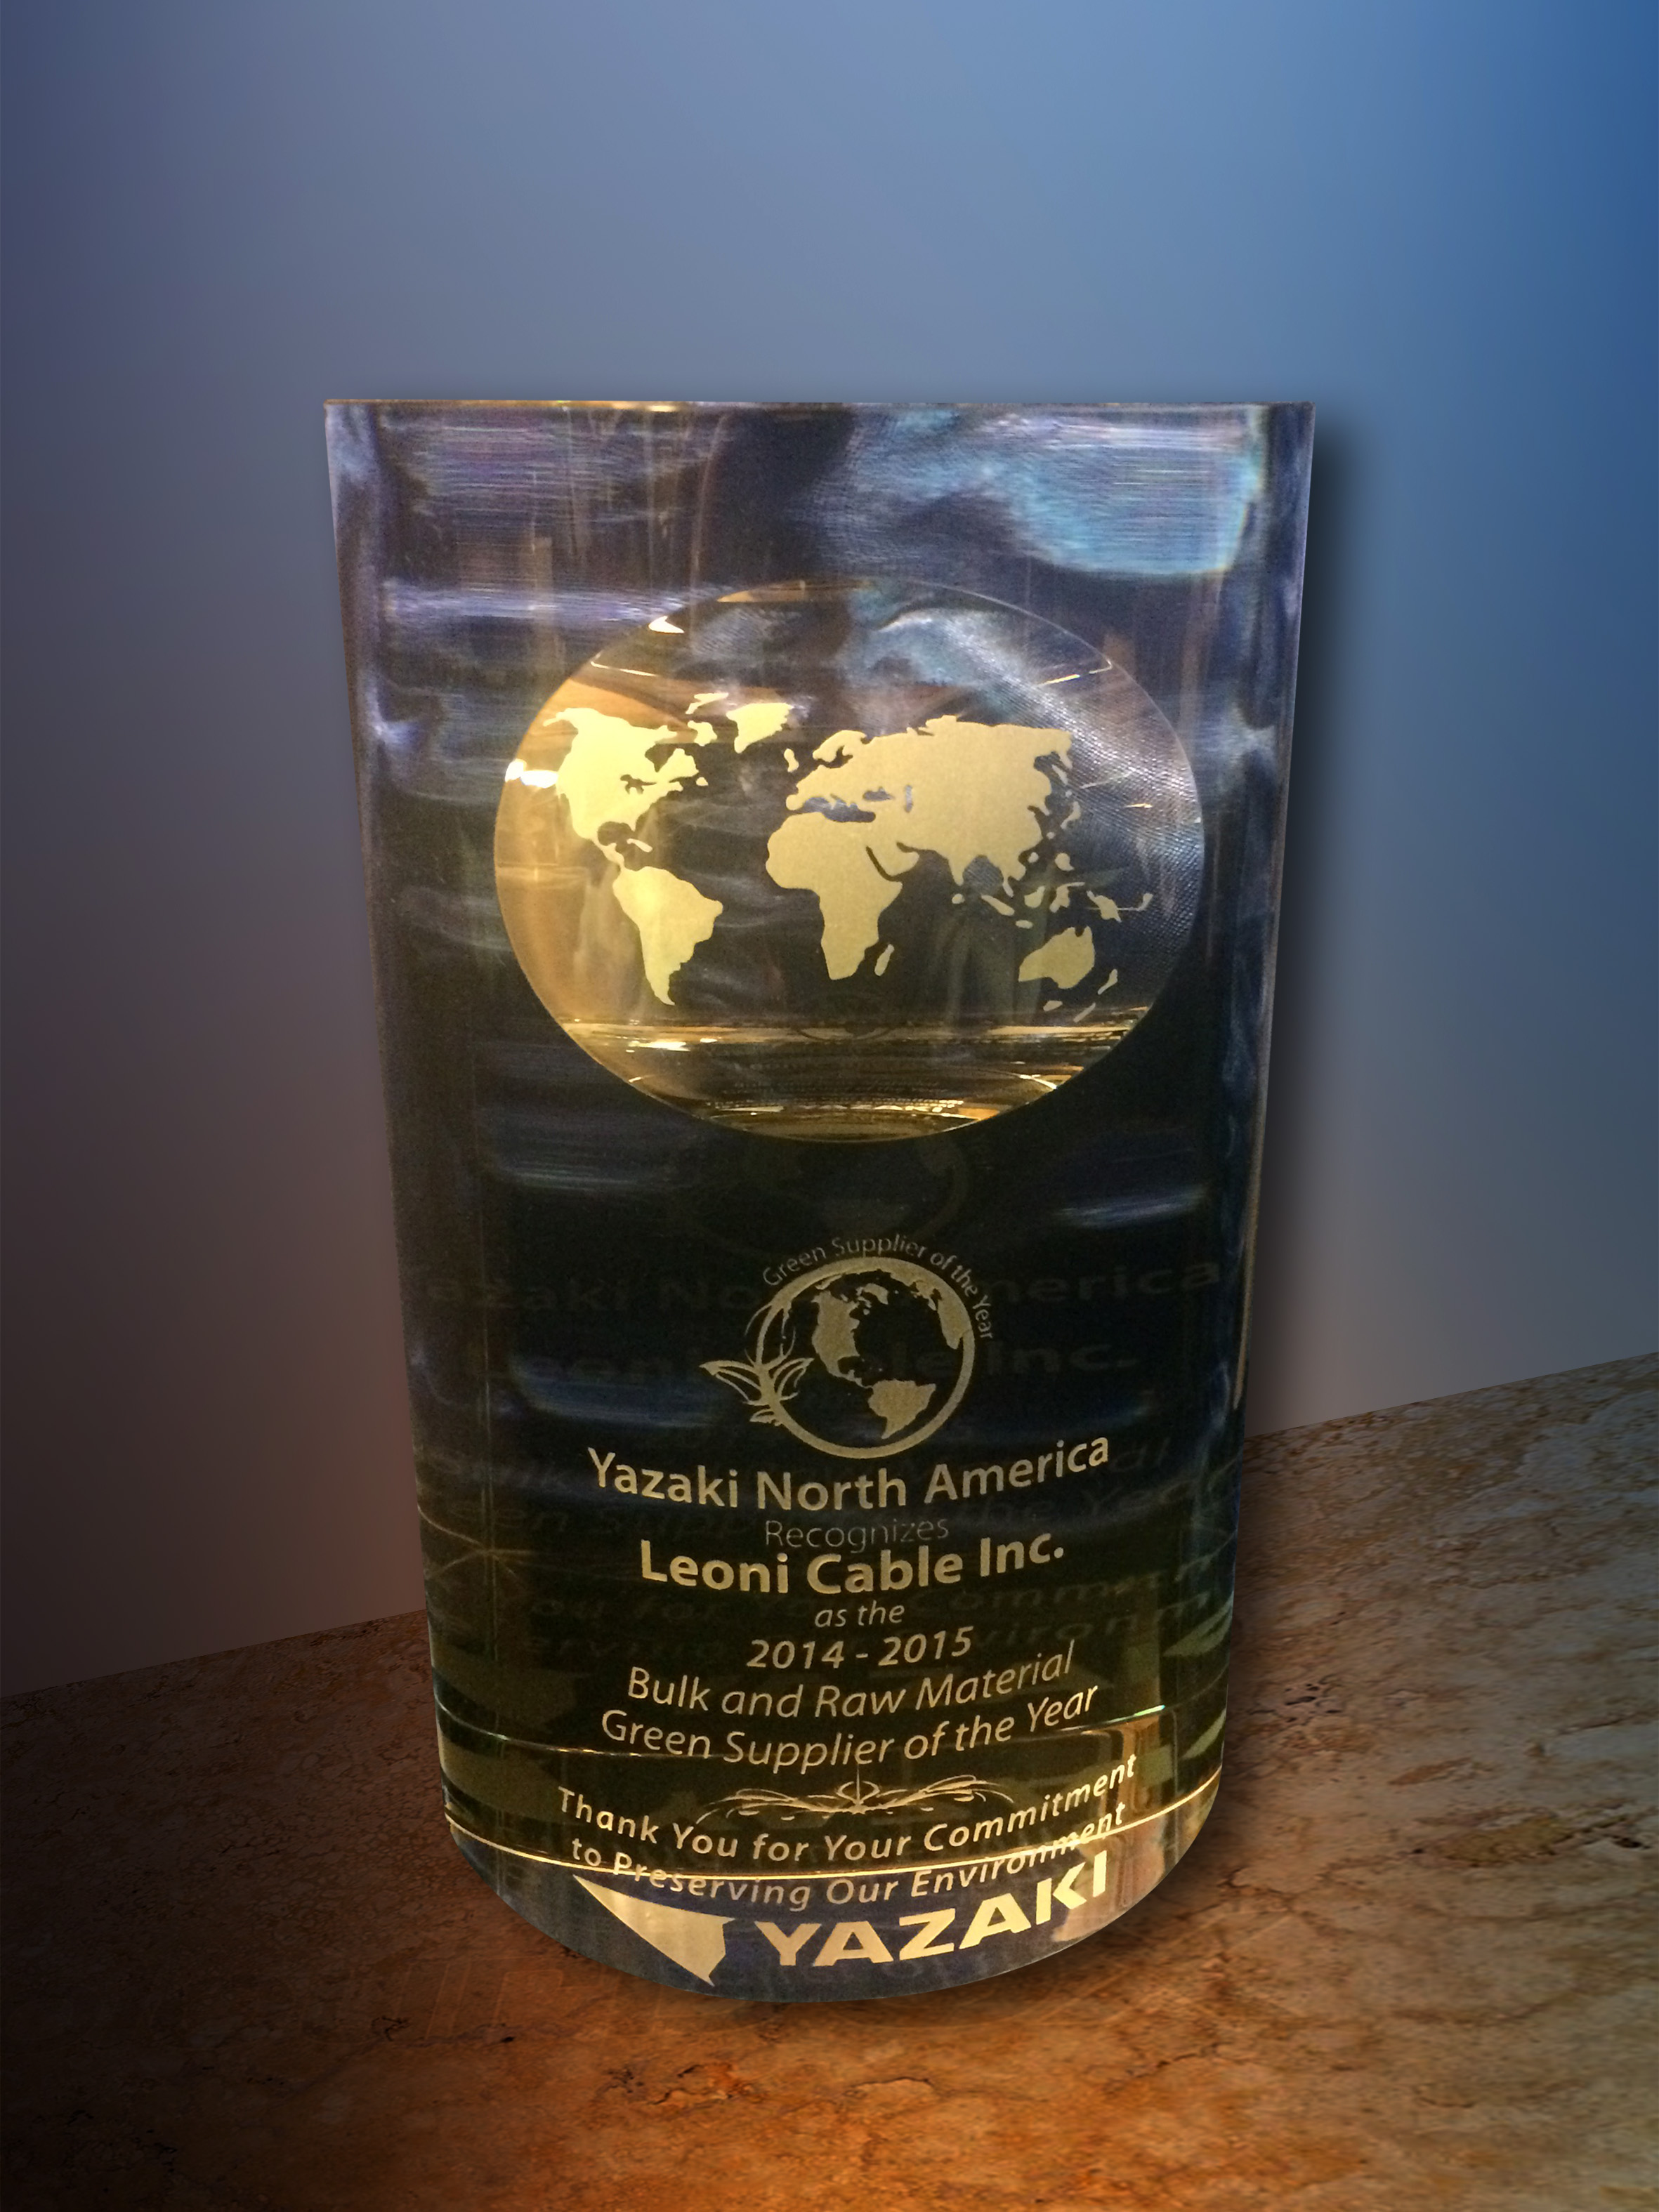 Leoni Cable Inc. Titled As 'Green Supplier Of The Year' By Yazaki